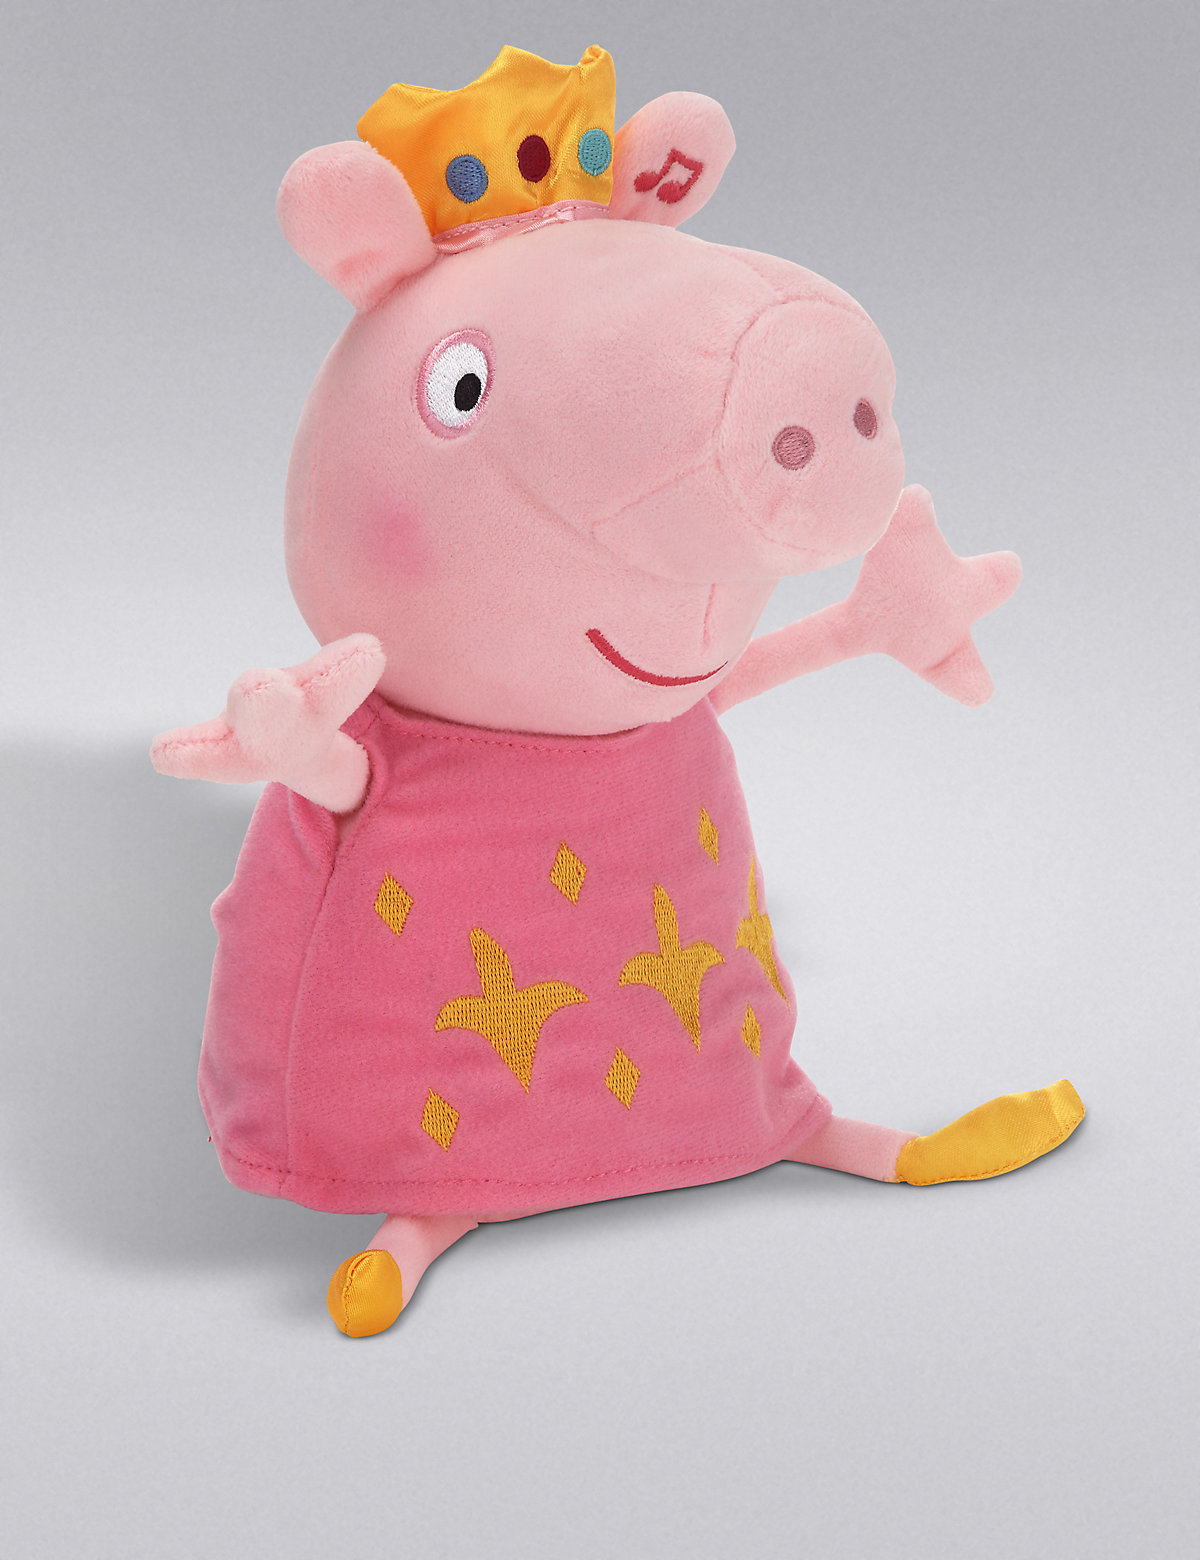 Best Peppa Pig Toys : Top cheapest peppa pig toy prices best uk deals on